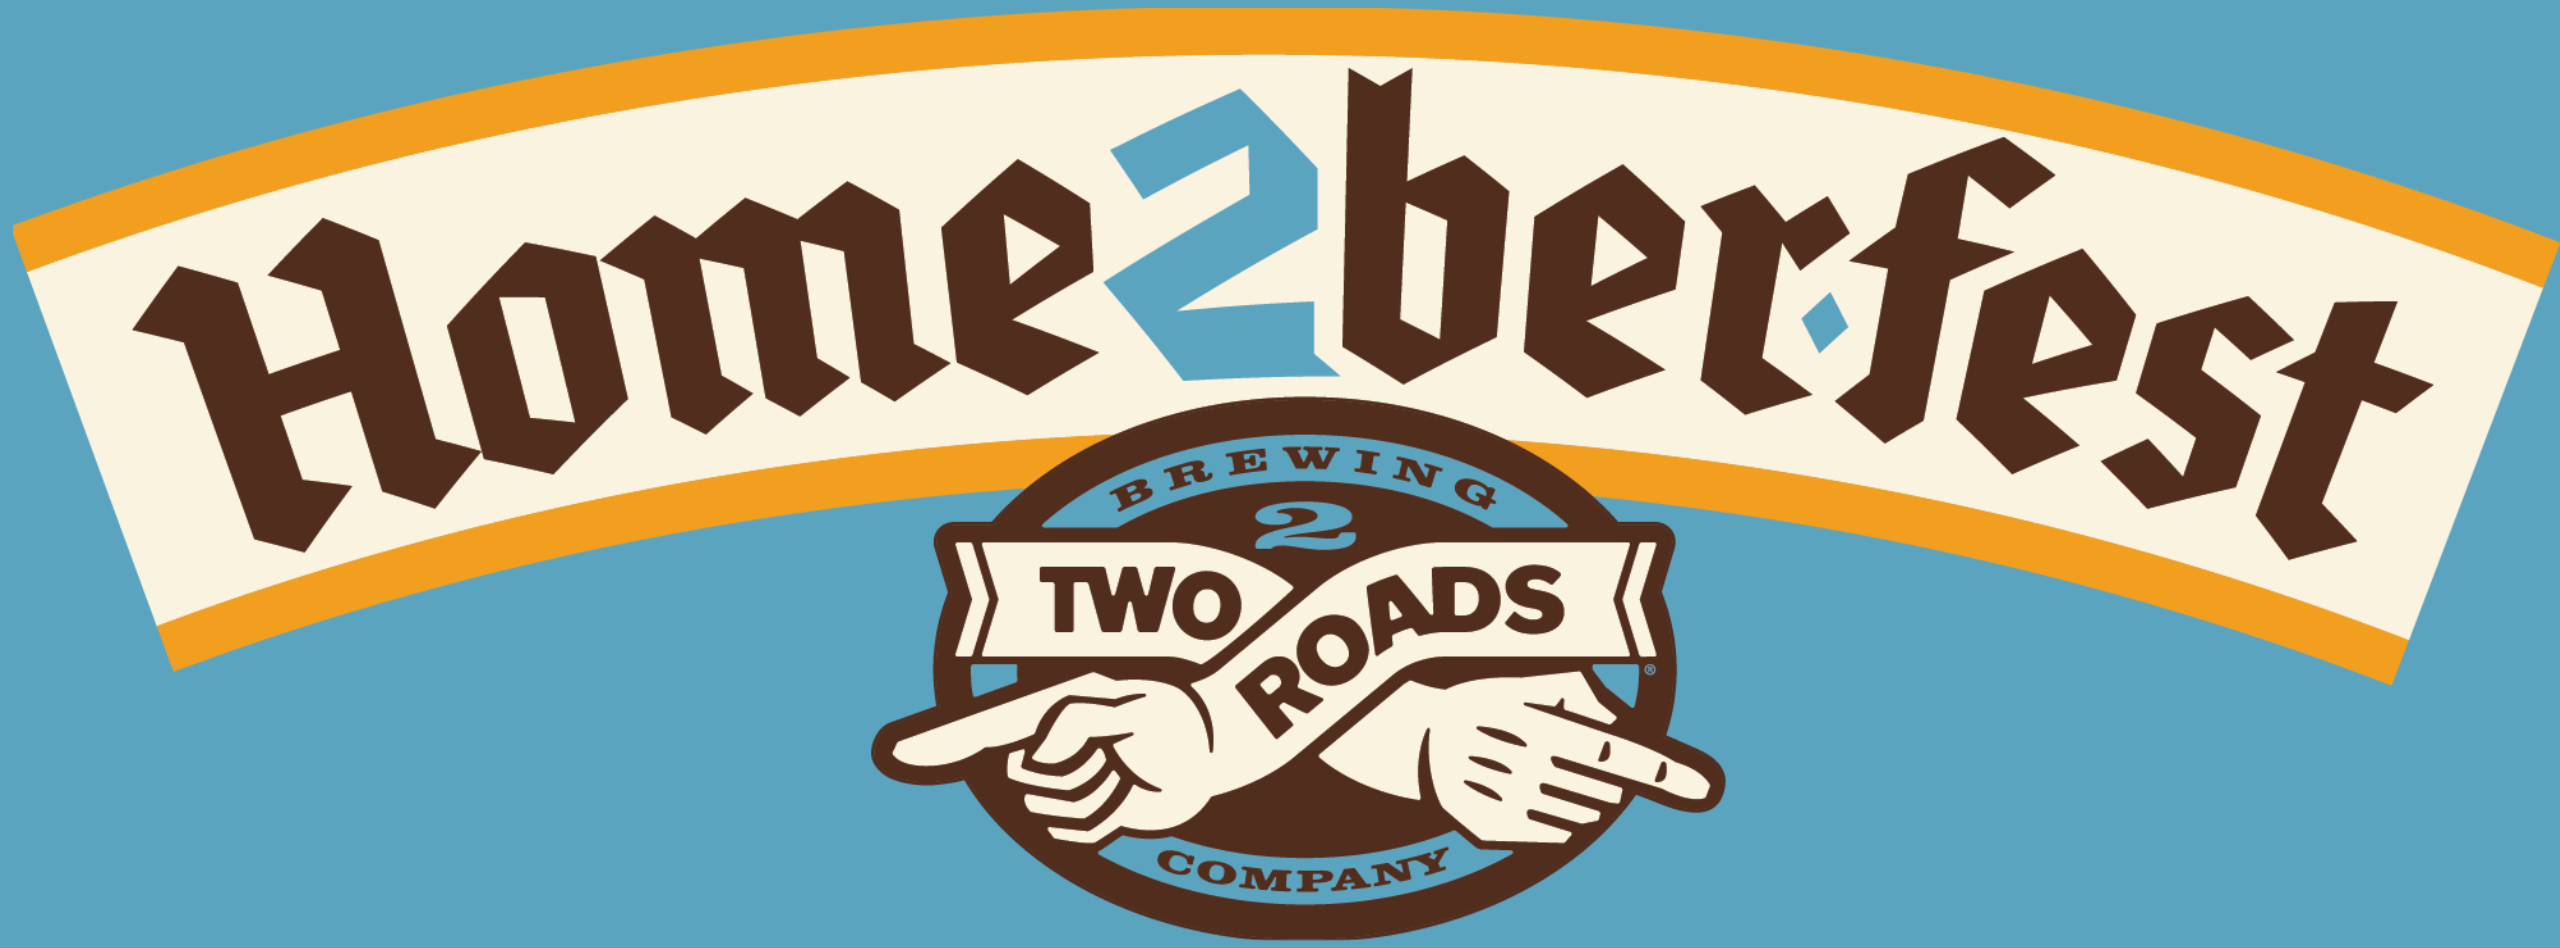 Tickets for Two Roads Ok2berfest 2018 in Stratford from BeerFests.com